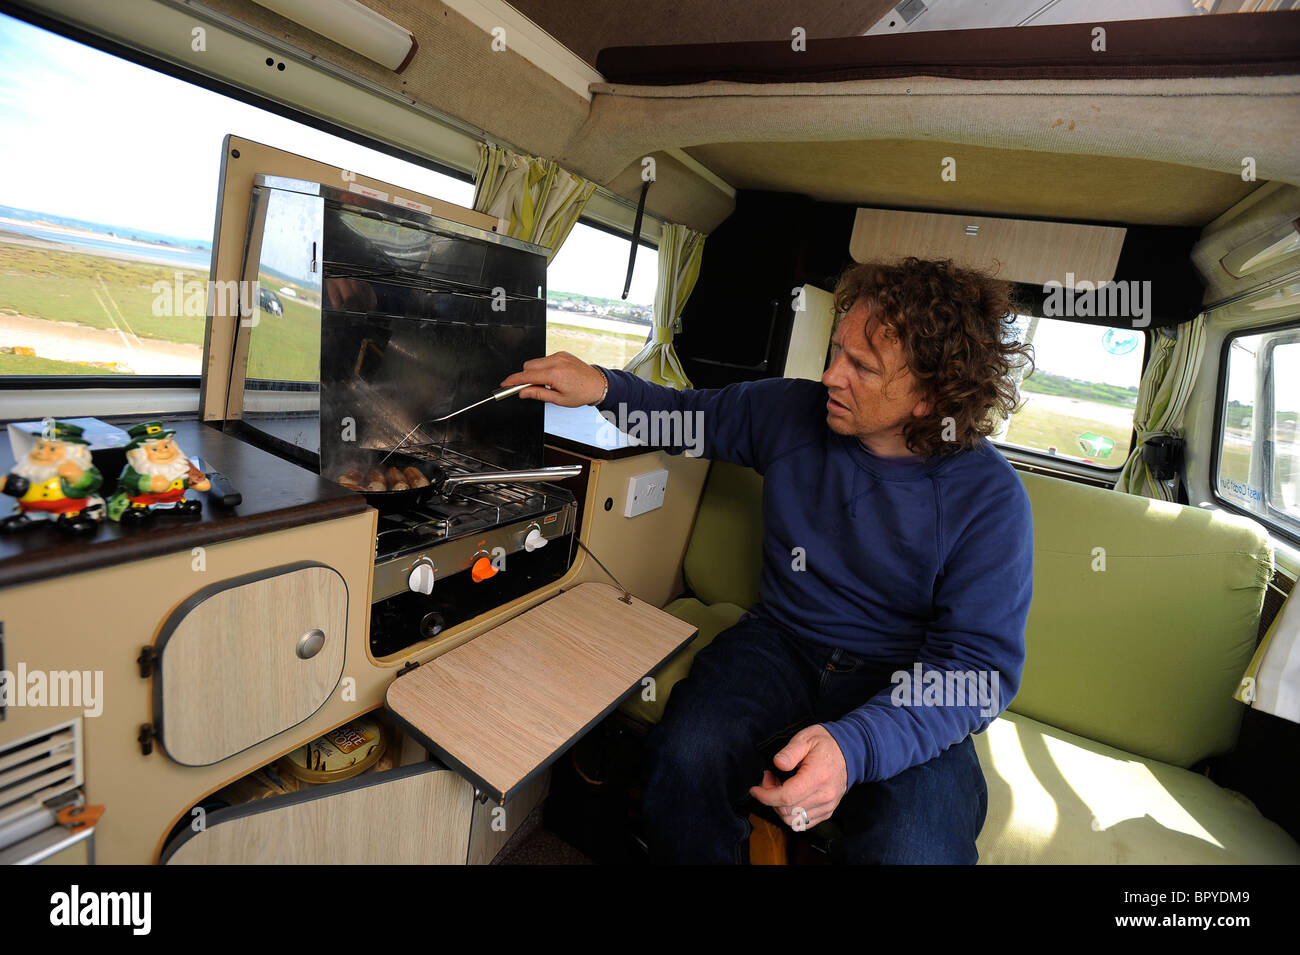 Author and TV presenter Martin Dorey, pictured cooking in his campervan in North Devon - Stock Image